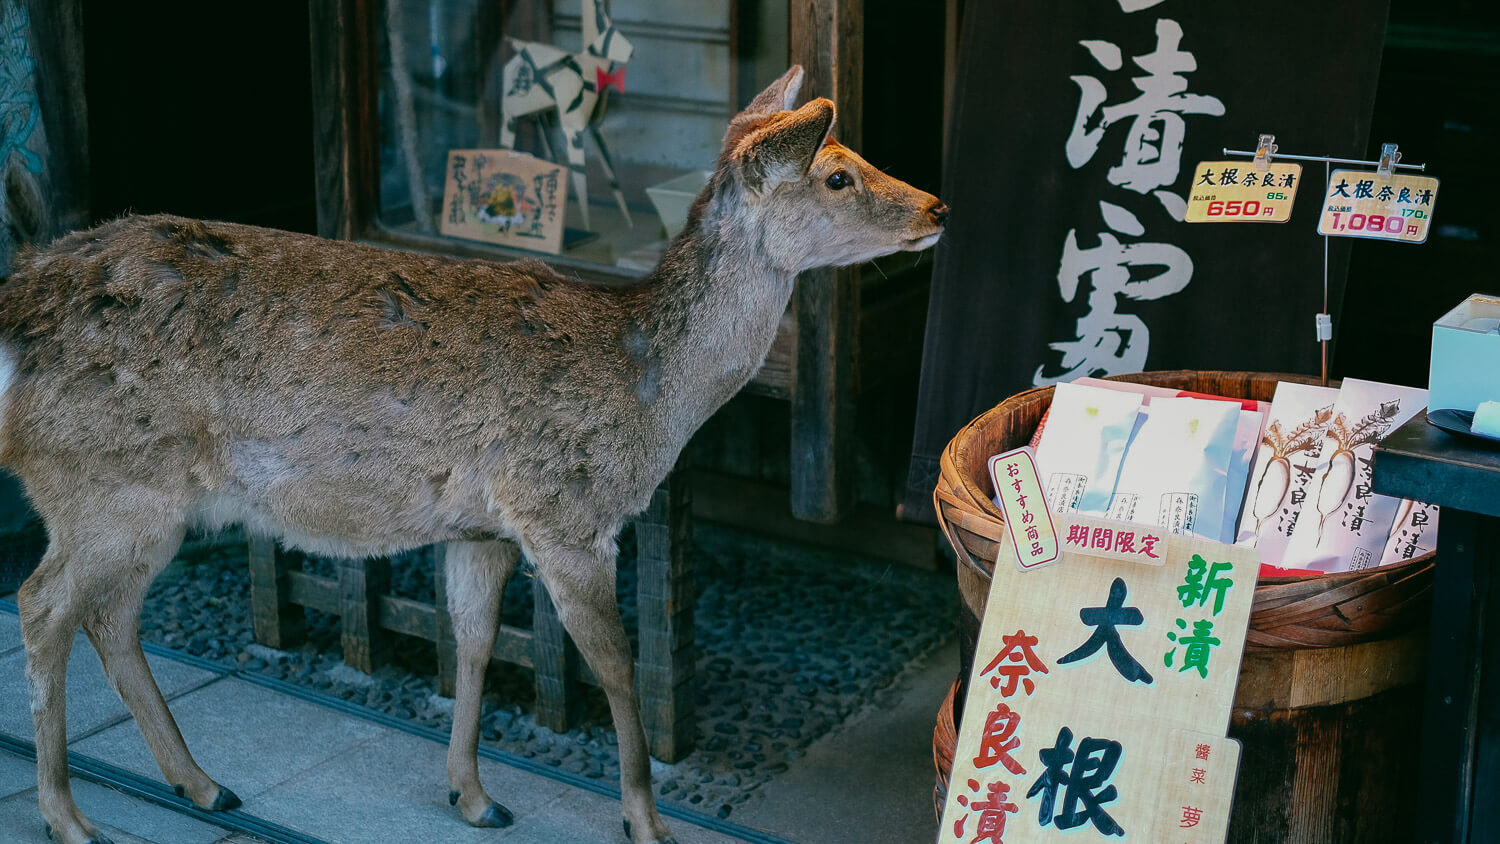 Deer shopping for some souvenirs in Nara Park